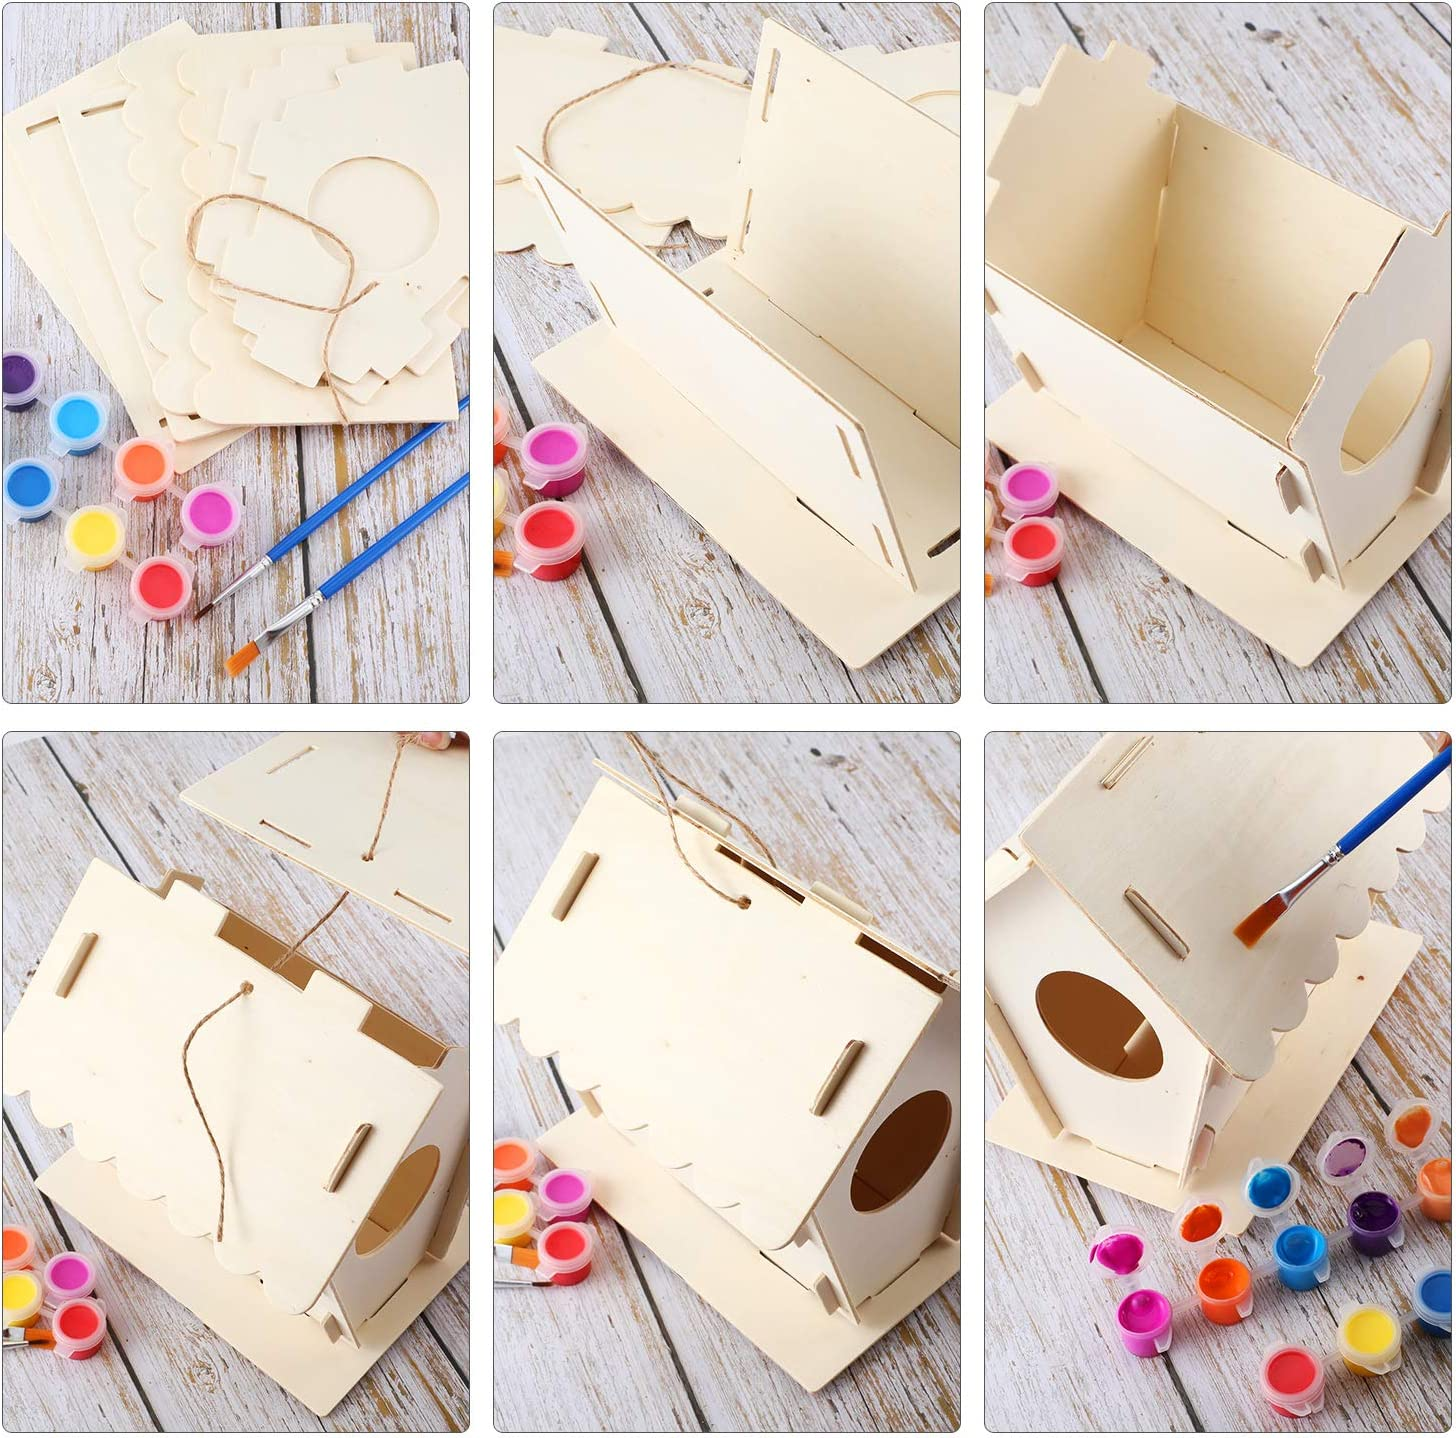 2 Set DIY Wooden Birdhouse Kits Unfinished Hanging Wood Bird Houses with Twine 2 Brushes for Kids to Build and Paint Birdhouse 12 Colors Paints